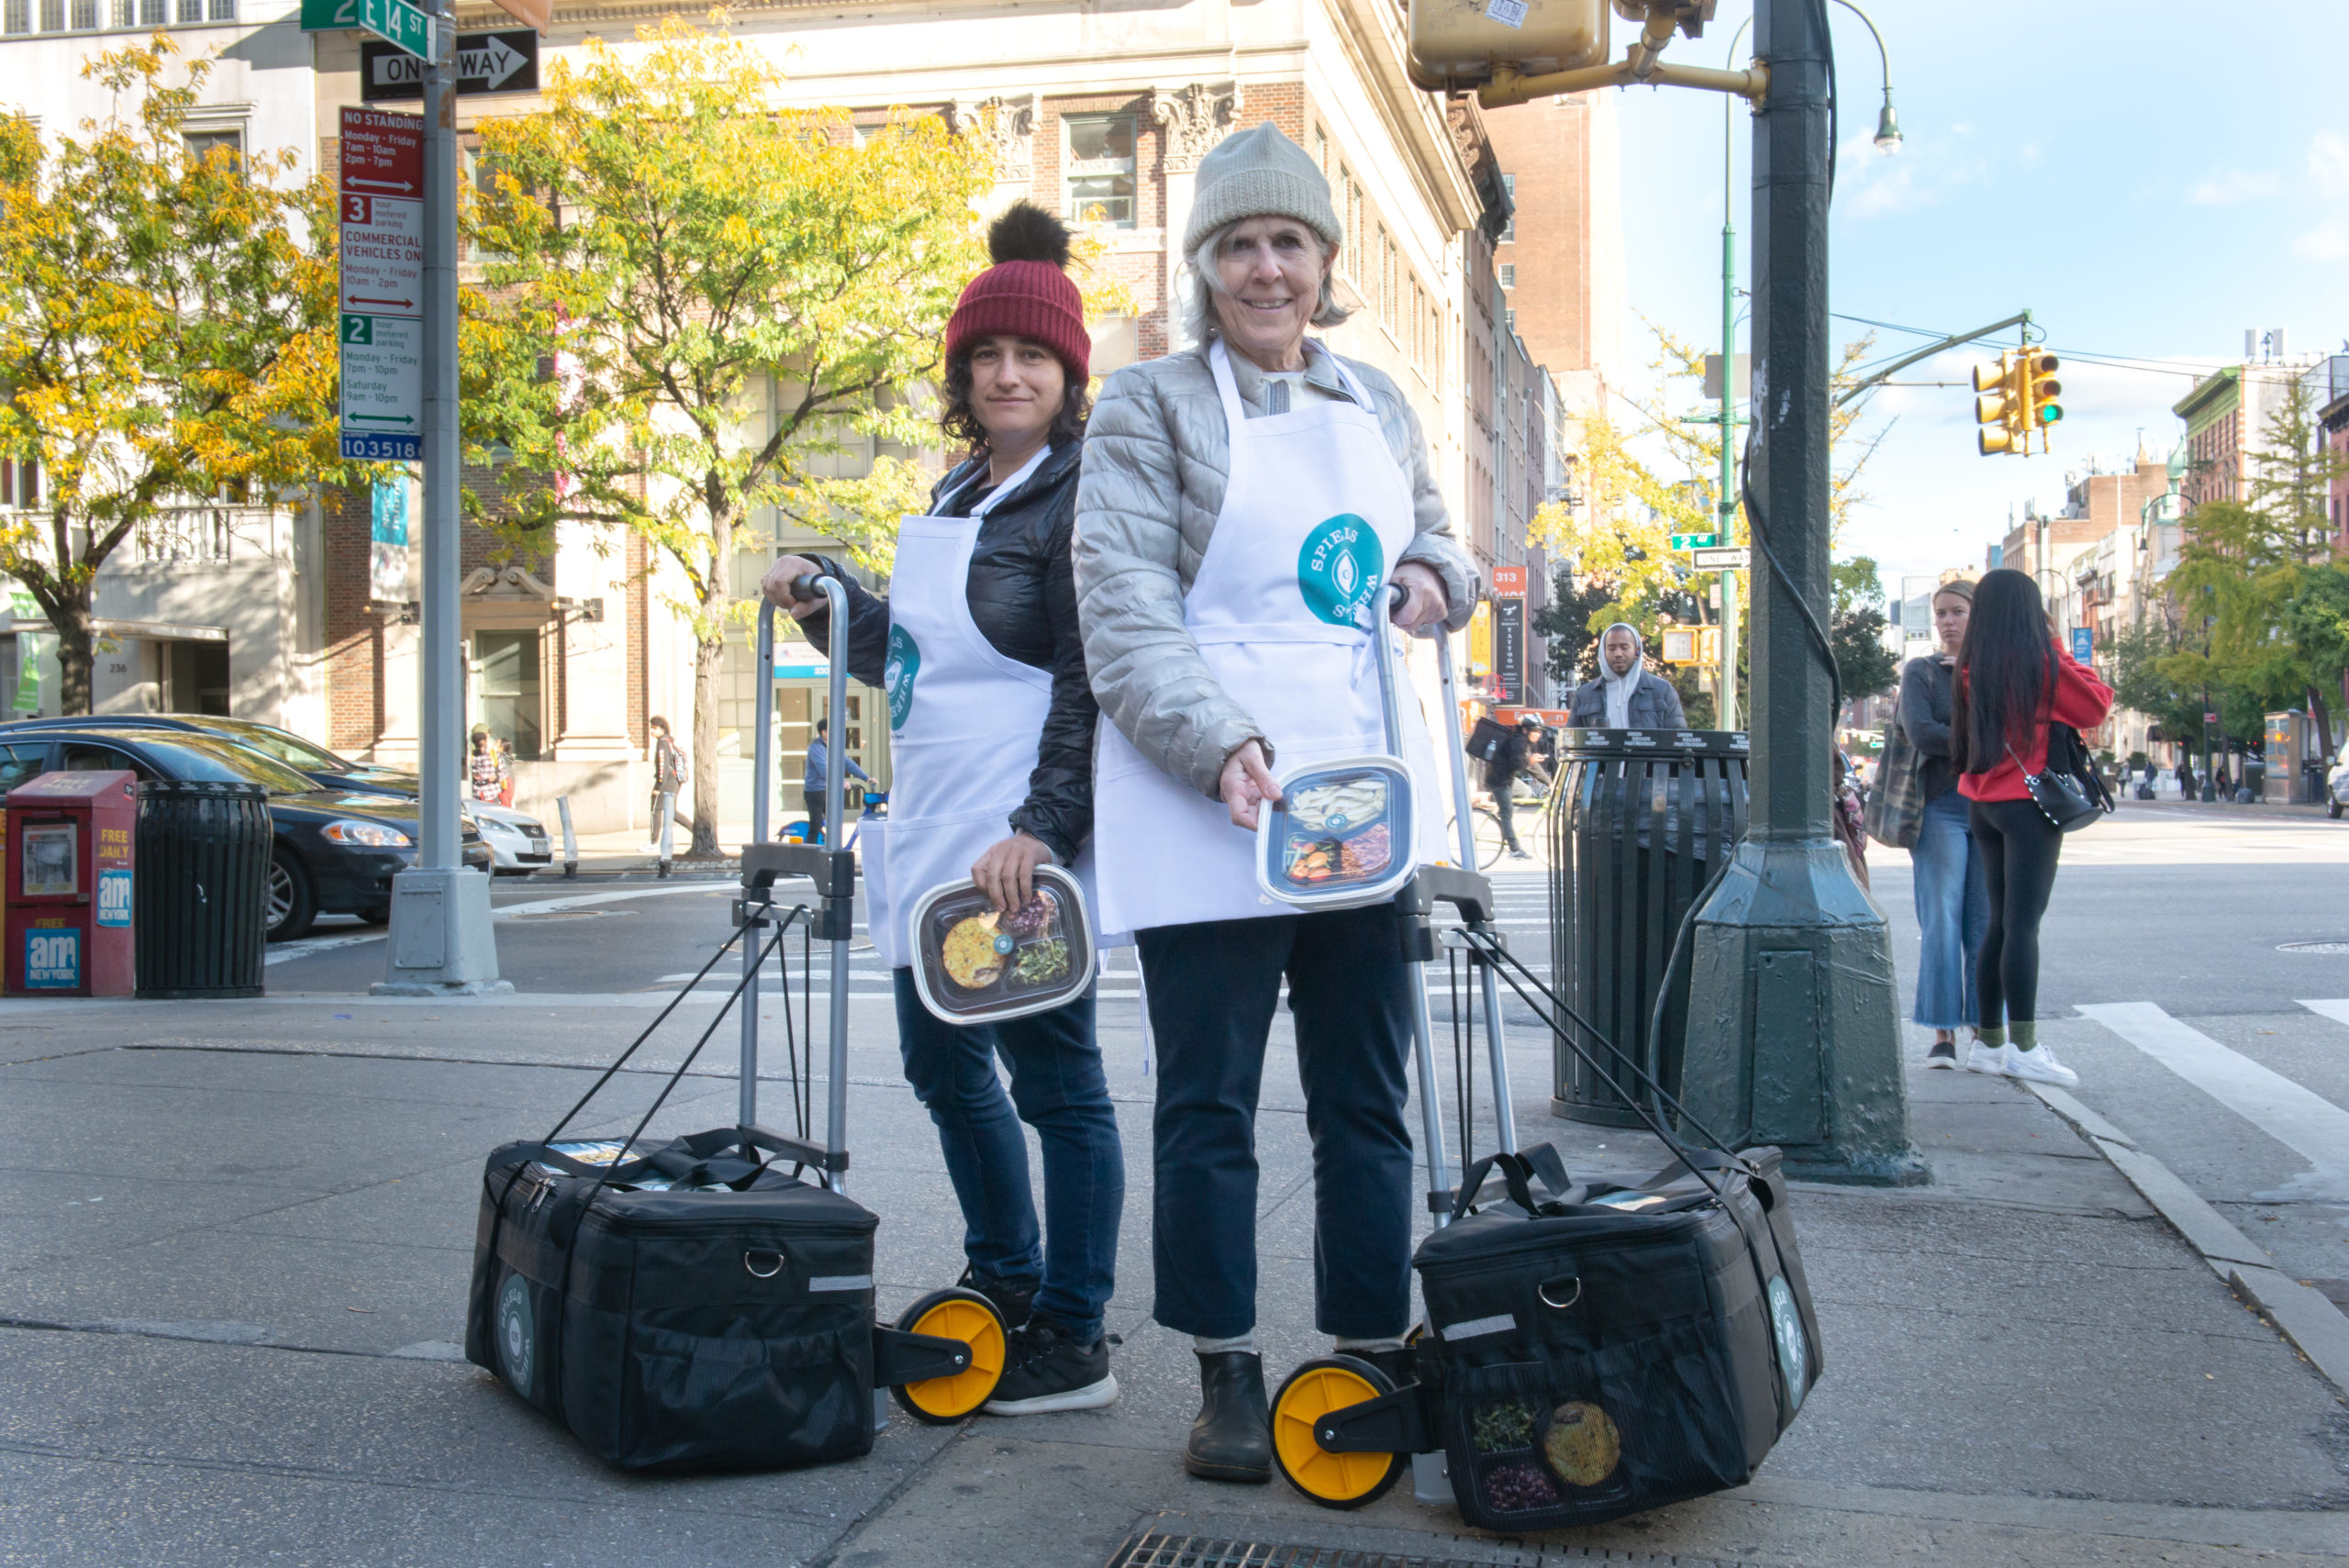 two women with rolly cases in aprons on a sidewalk